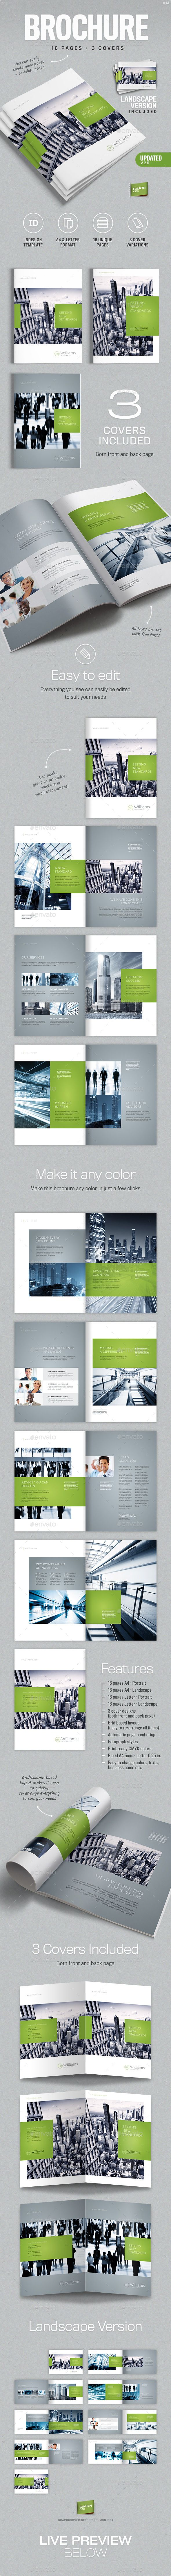 Corporate Business Brochure 16 pages A4 + Letter - Corporate Brochures #indesign #template